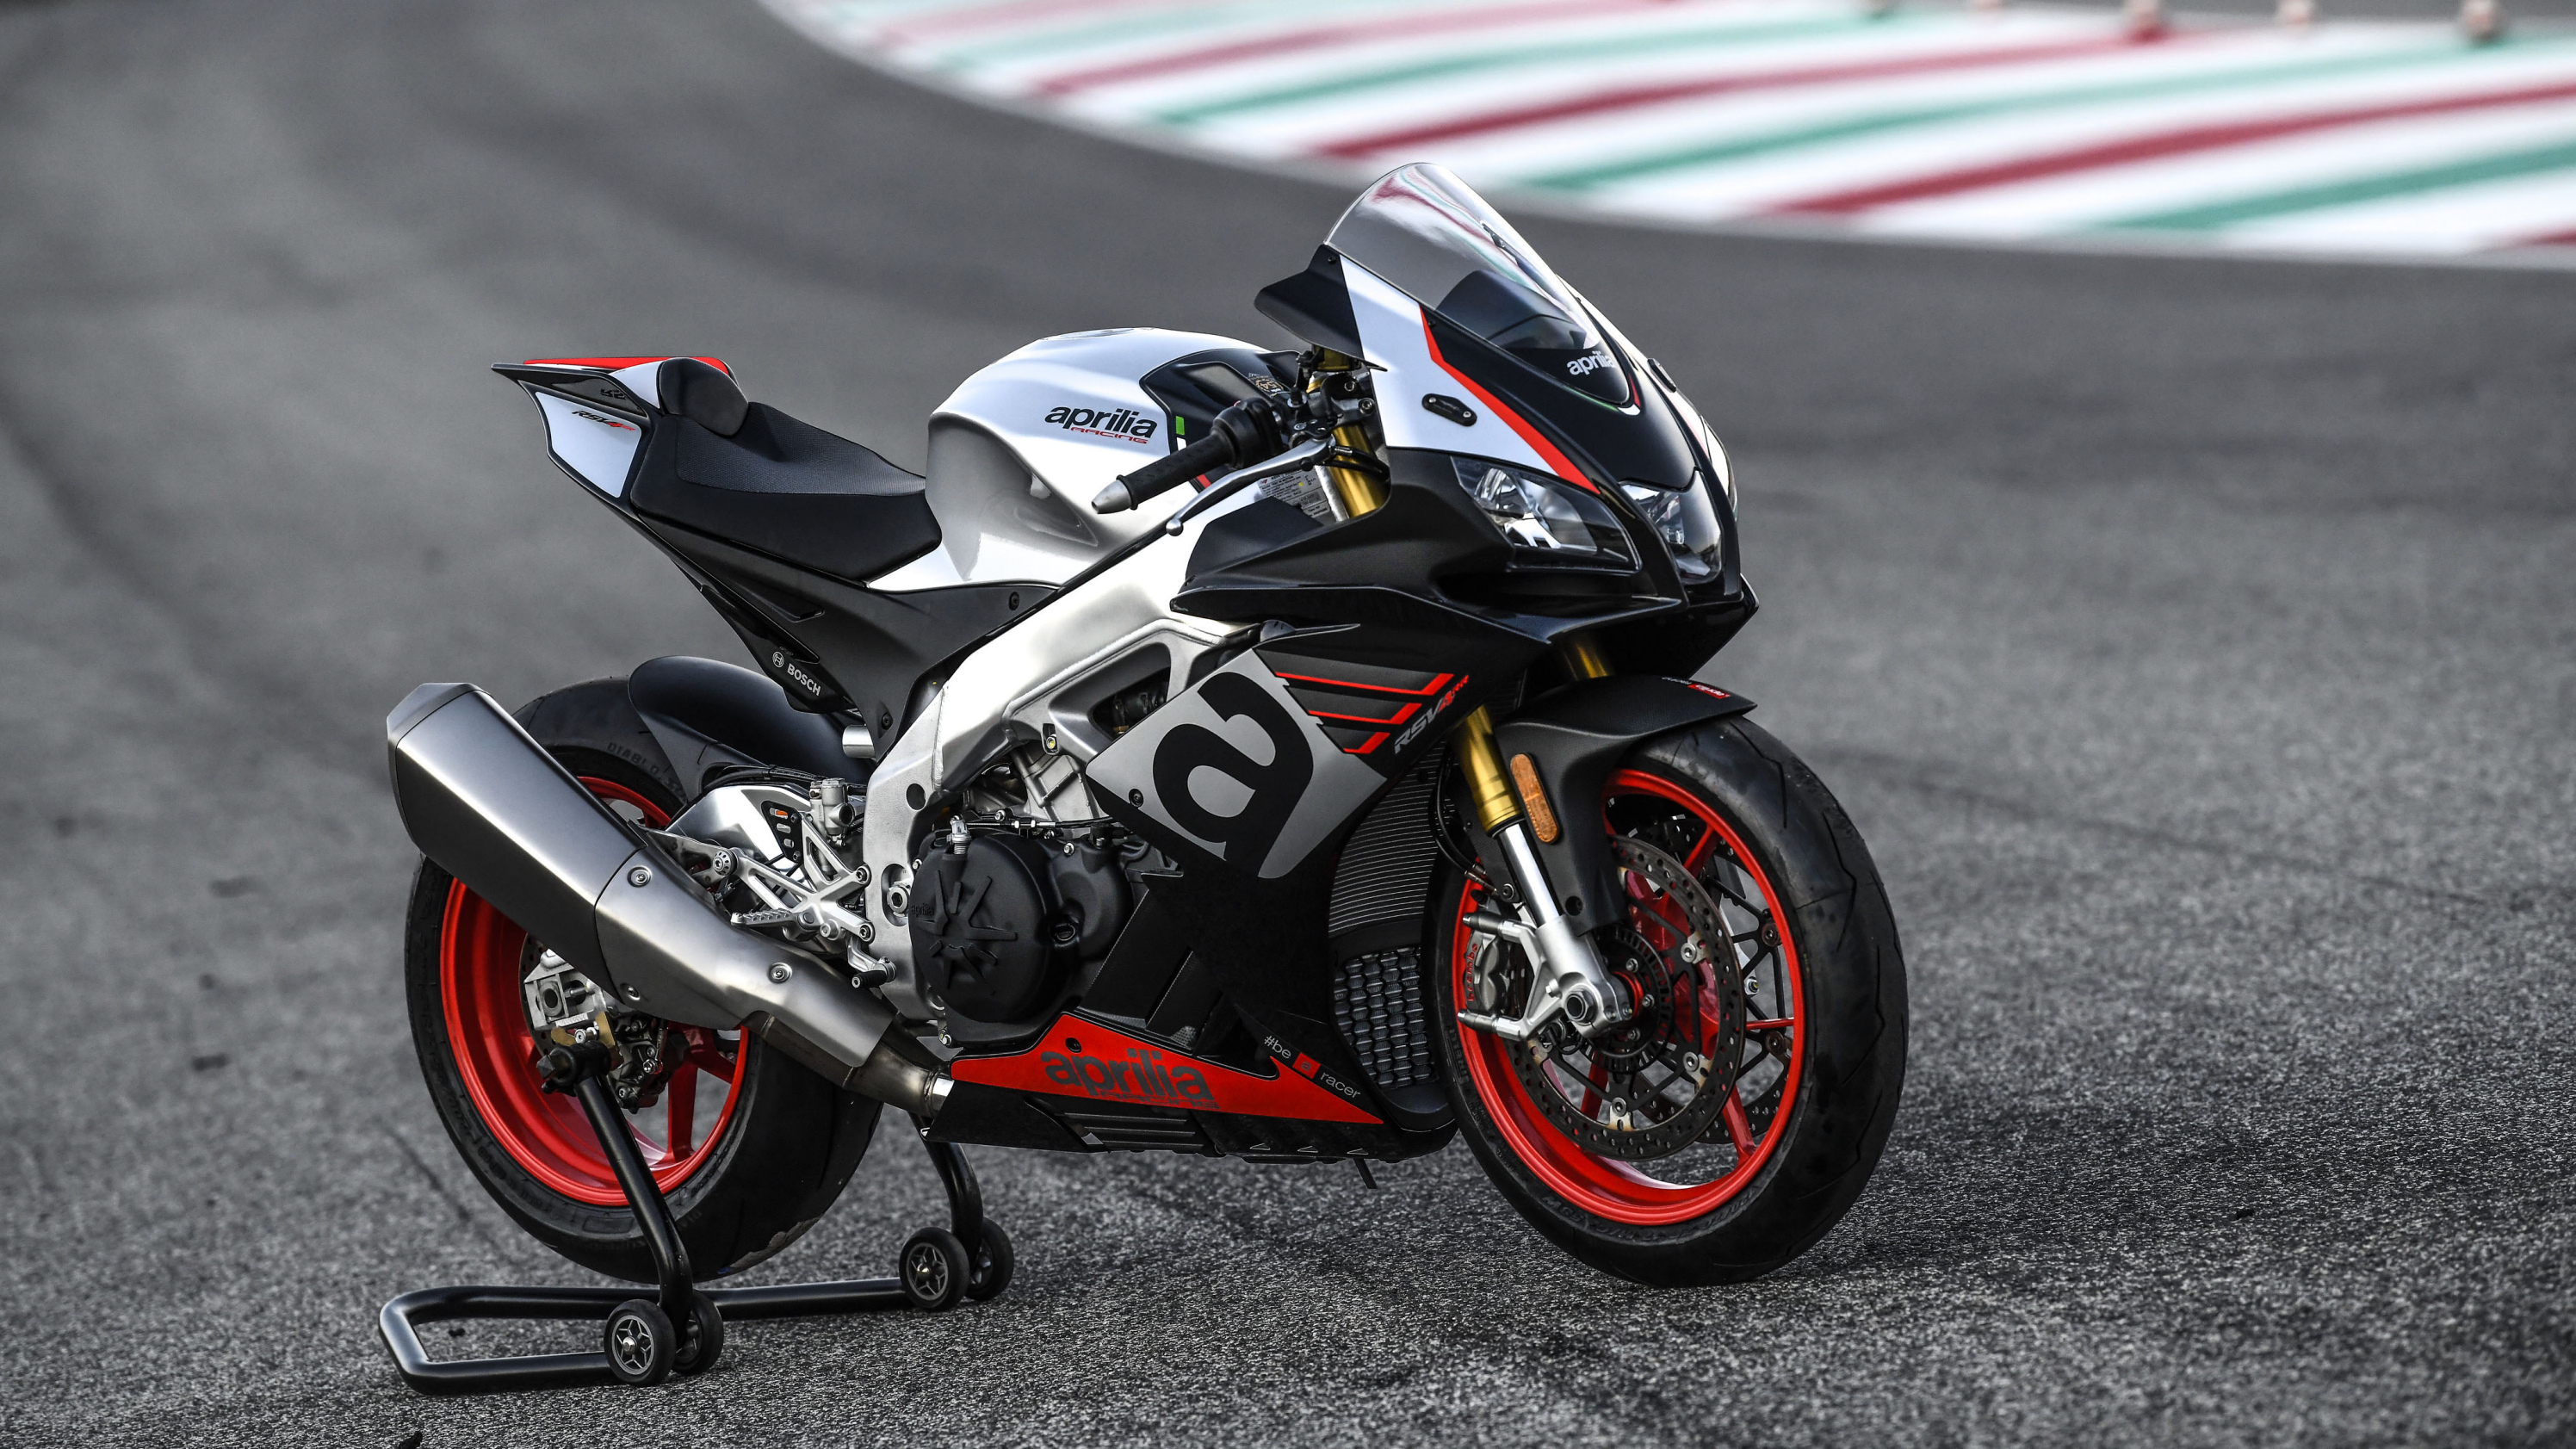 2019 Aprilia RSV4 RR Pictures, Photos, Wallpapers